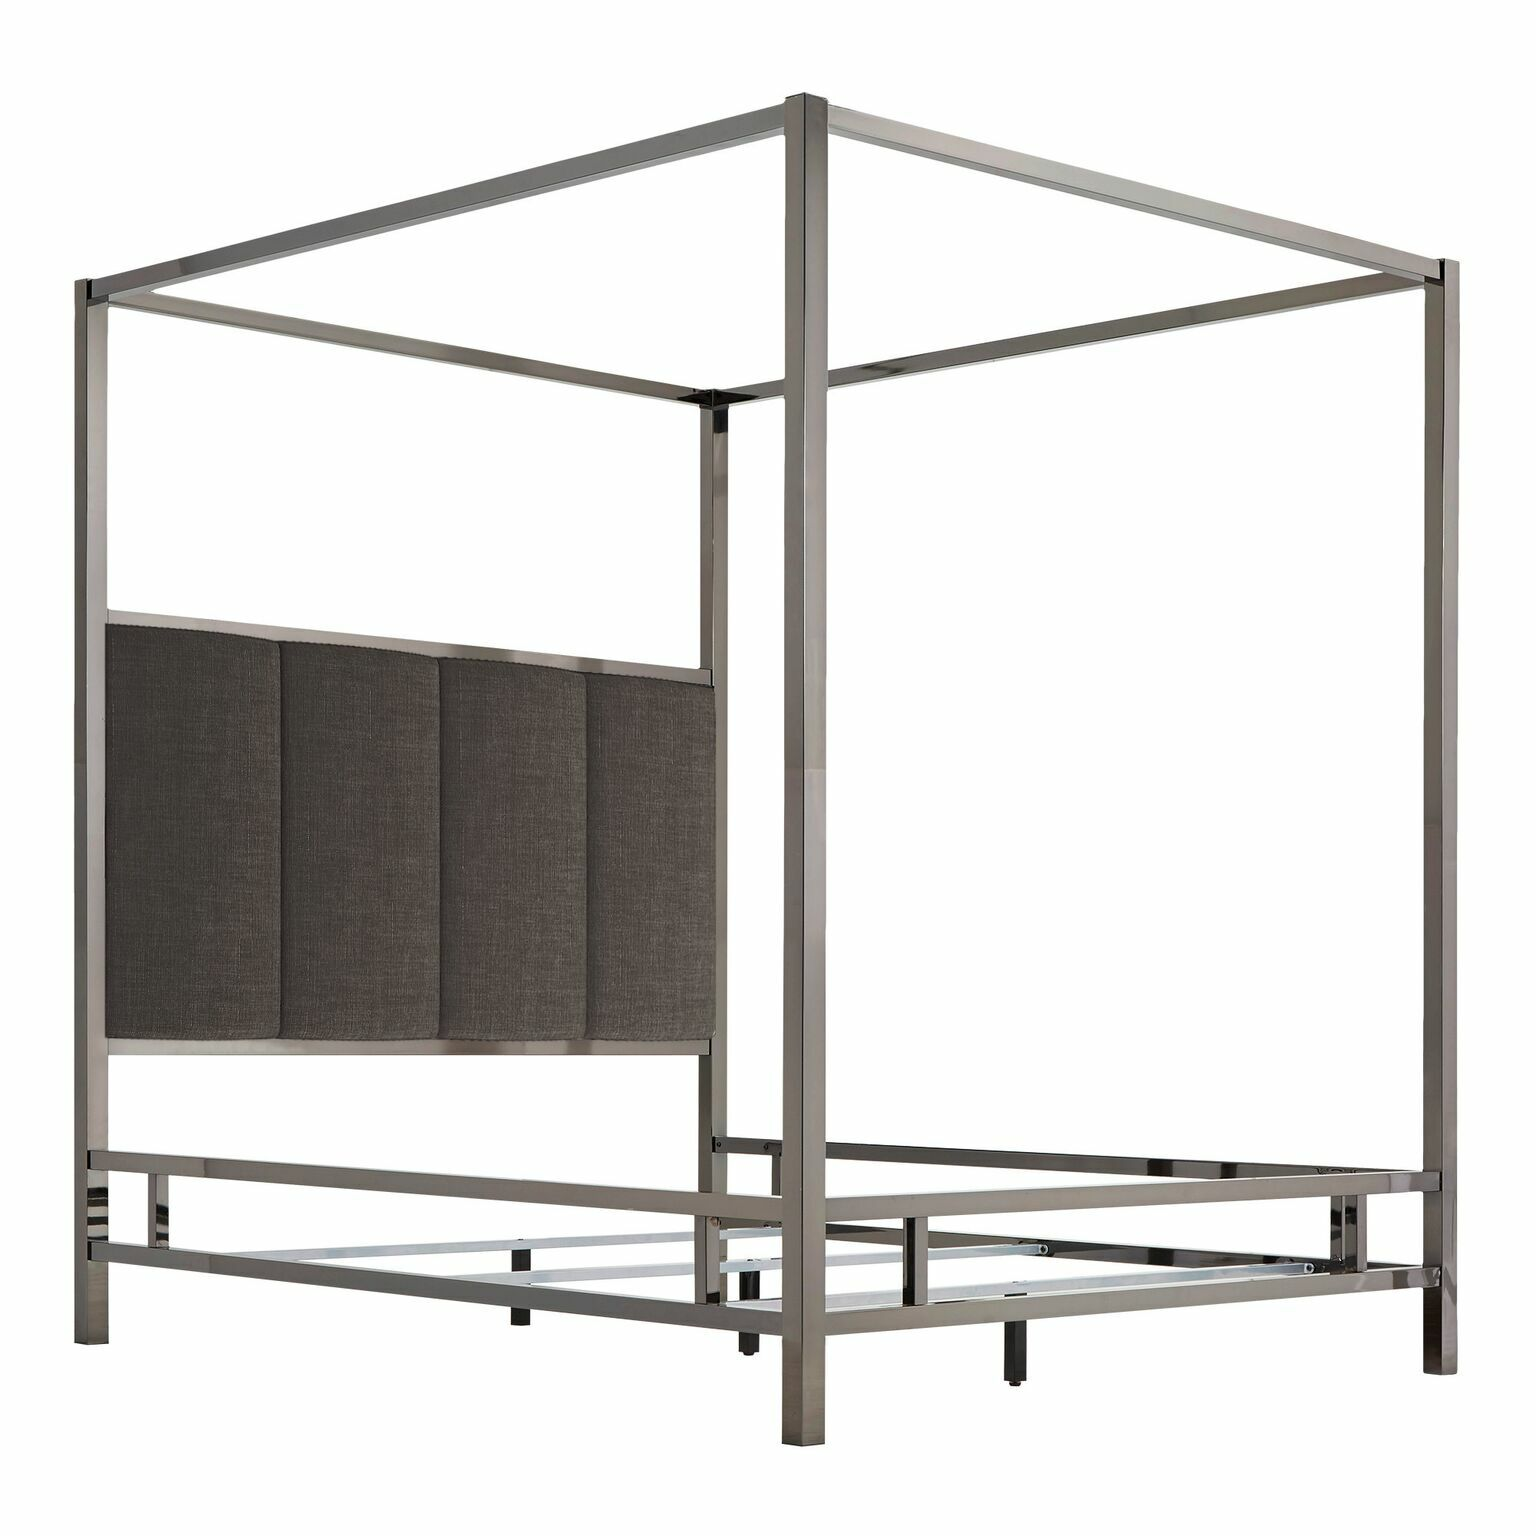 Wicklund Upholstered Canopy Bed Color (Frame/Headboard): Black Nickel/Dark Gray, Size: Queen